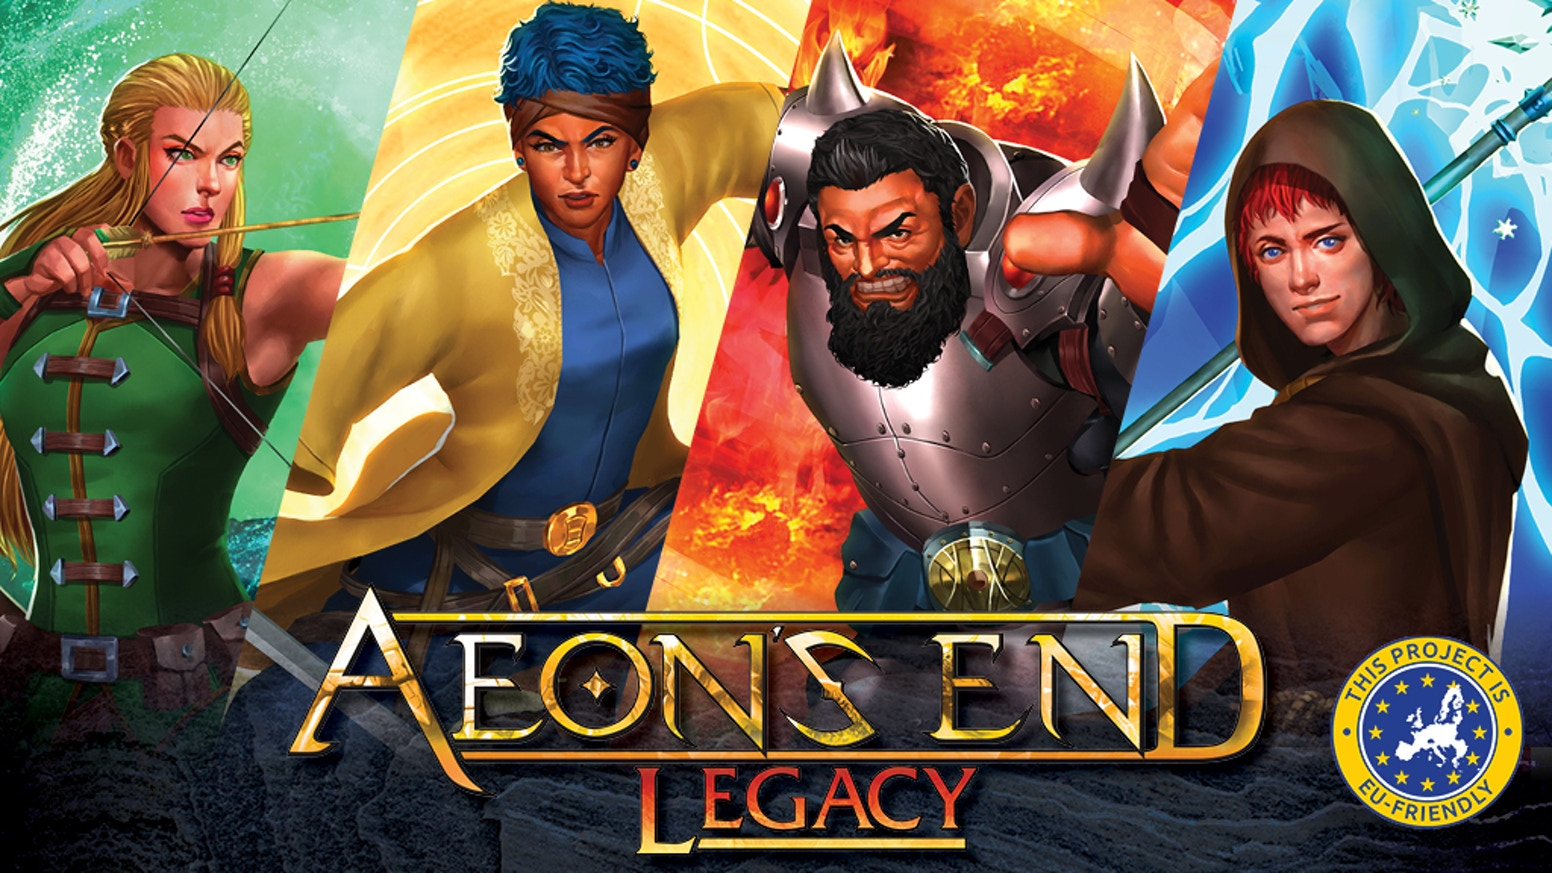 Aeon's End: Legacy is the top crowdfunding project launched today. Aeon's End: Legacy raised over $621695 from 5117 backers. Other top projects include The Thinking Egg | It's Time To Slow Down, Cooks & Crooks - Experience the satisfaction of ruining food, Kakuri...